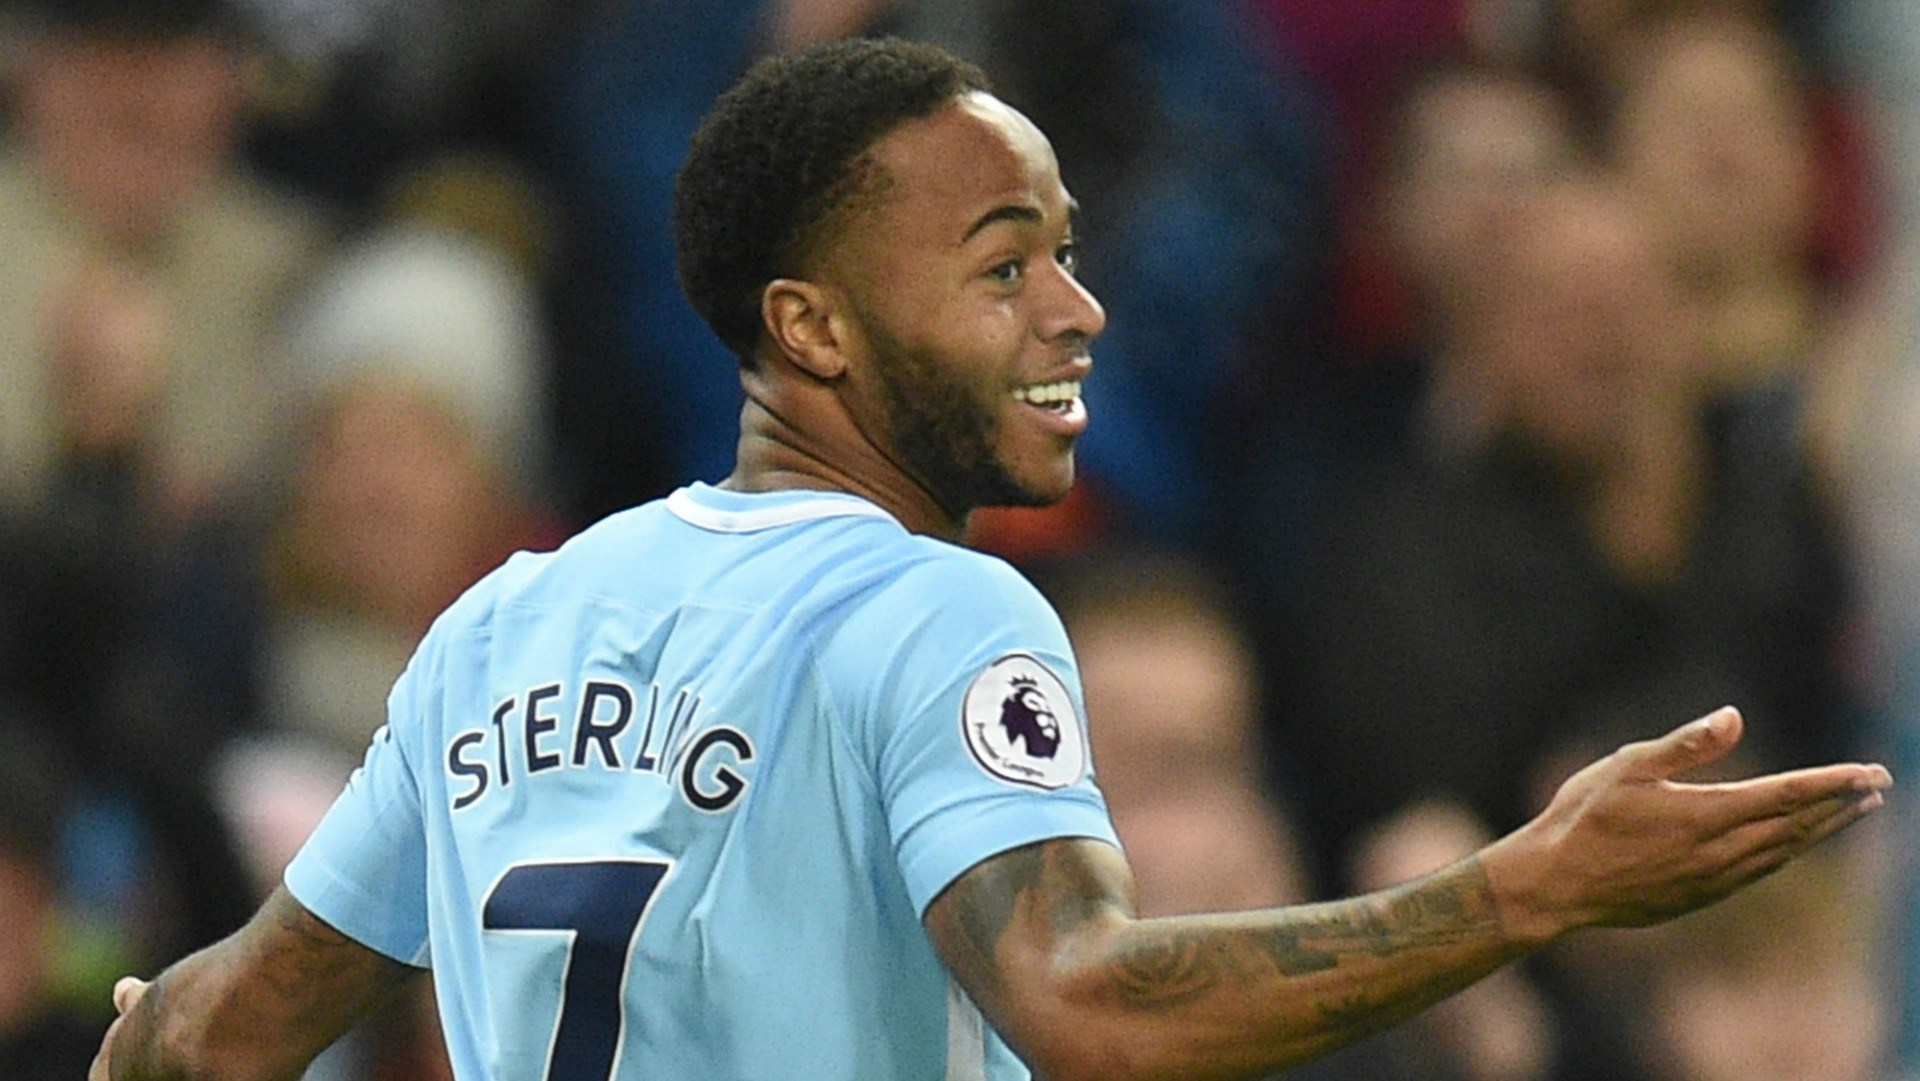 https://images.performgroup.com/di/library/GOAL/44/2f/raheem-sterling-manchester-city_1w7fh15niv0ro1q0wg4cwpjvs5.jpg?t=-2080385200&quality=90&w=0&h=1260